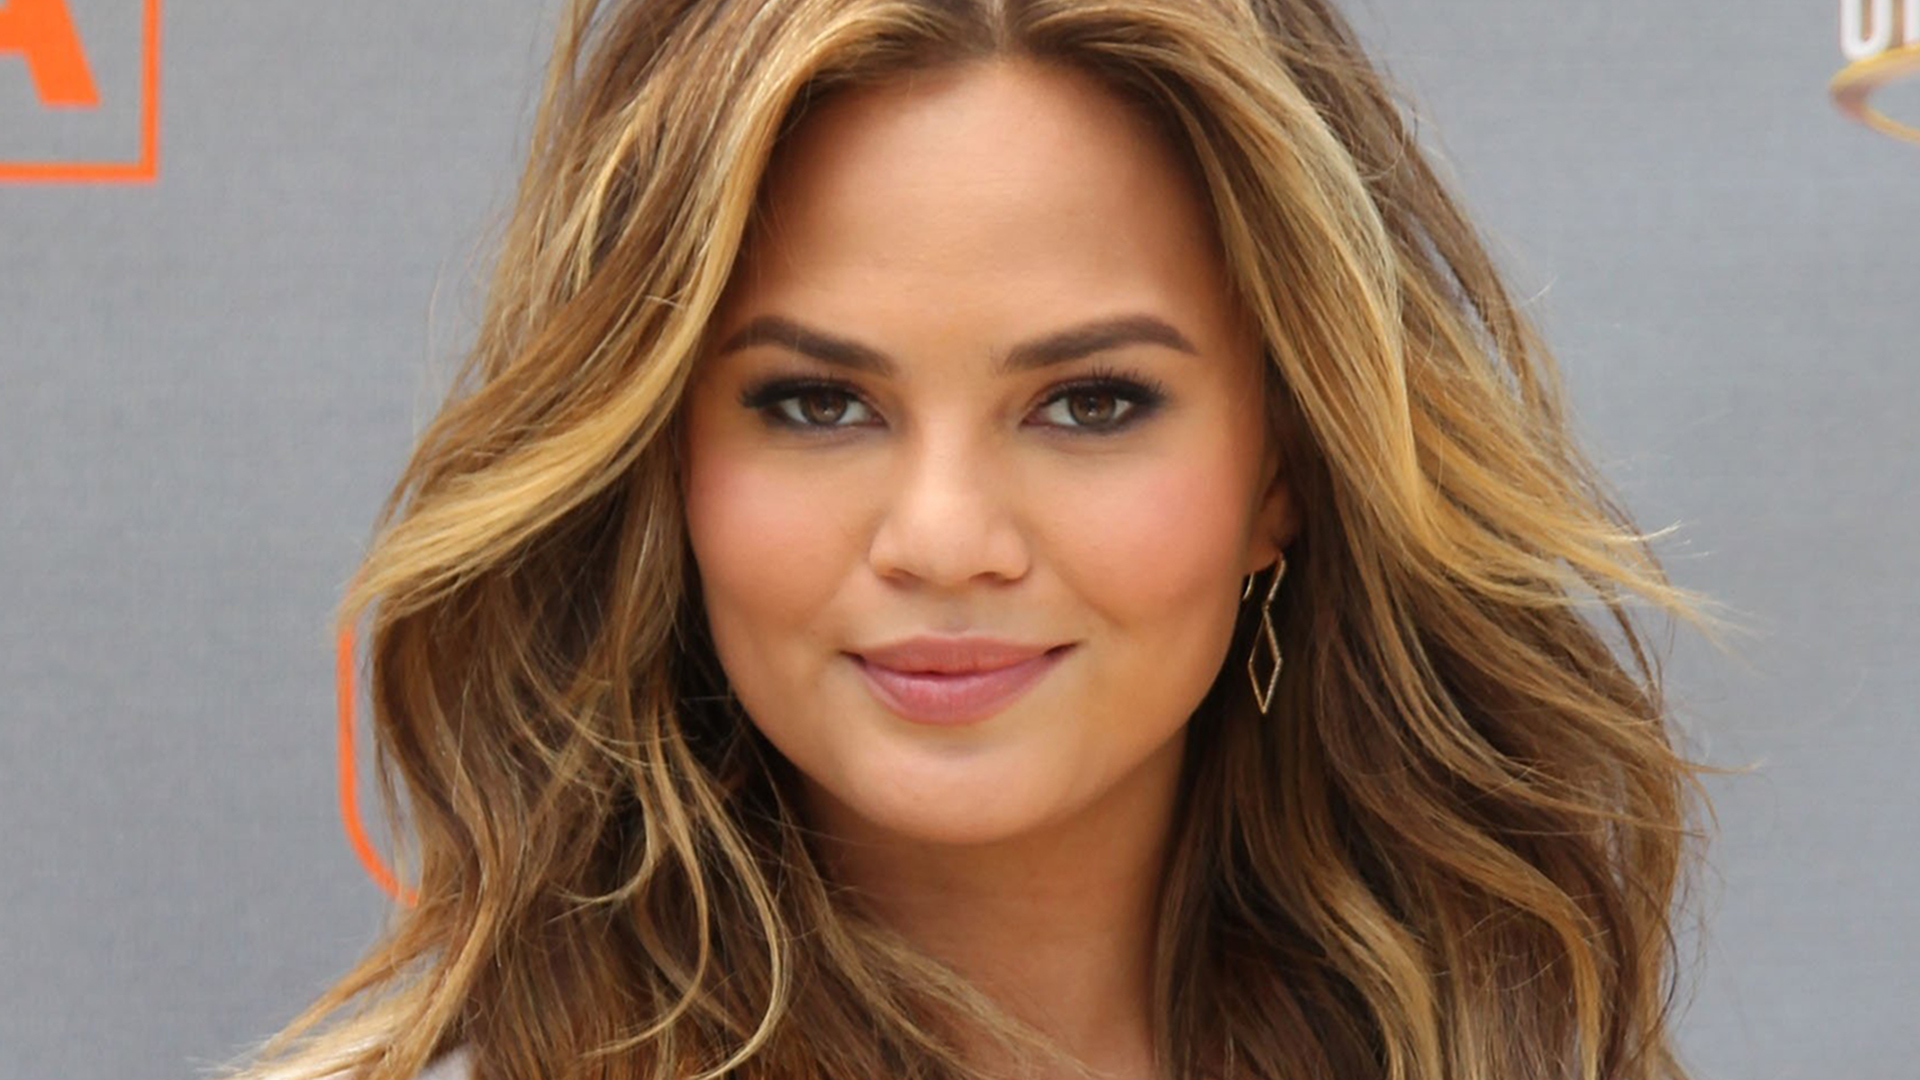 Chrissy Teigen Stretch Marks Body Image And Rum